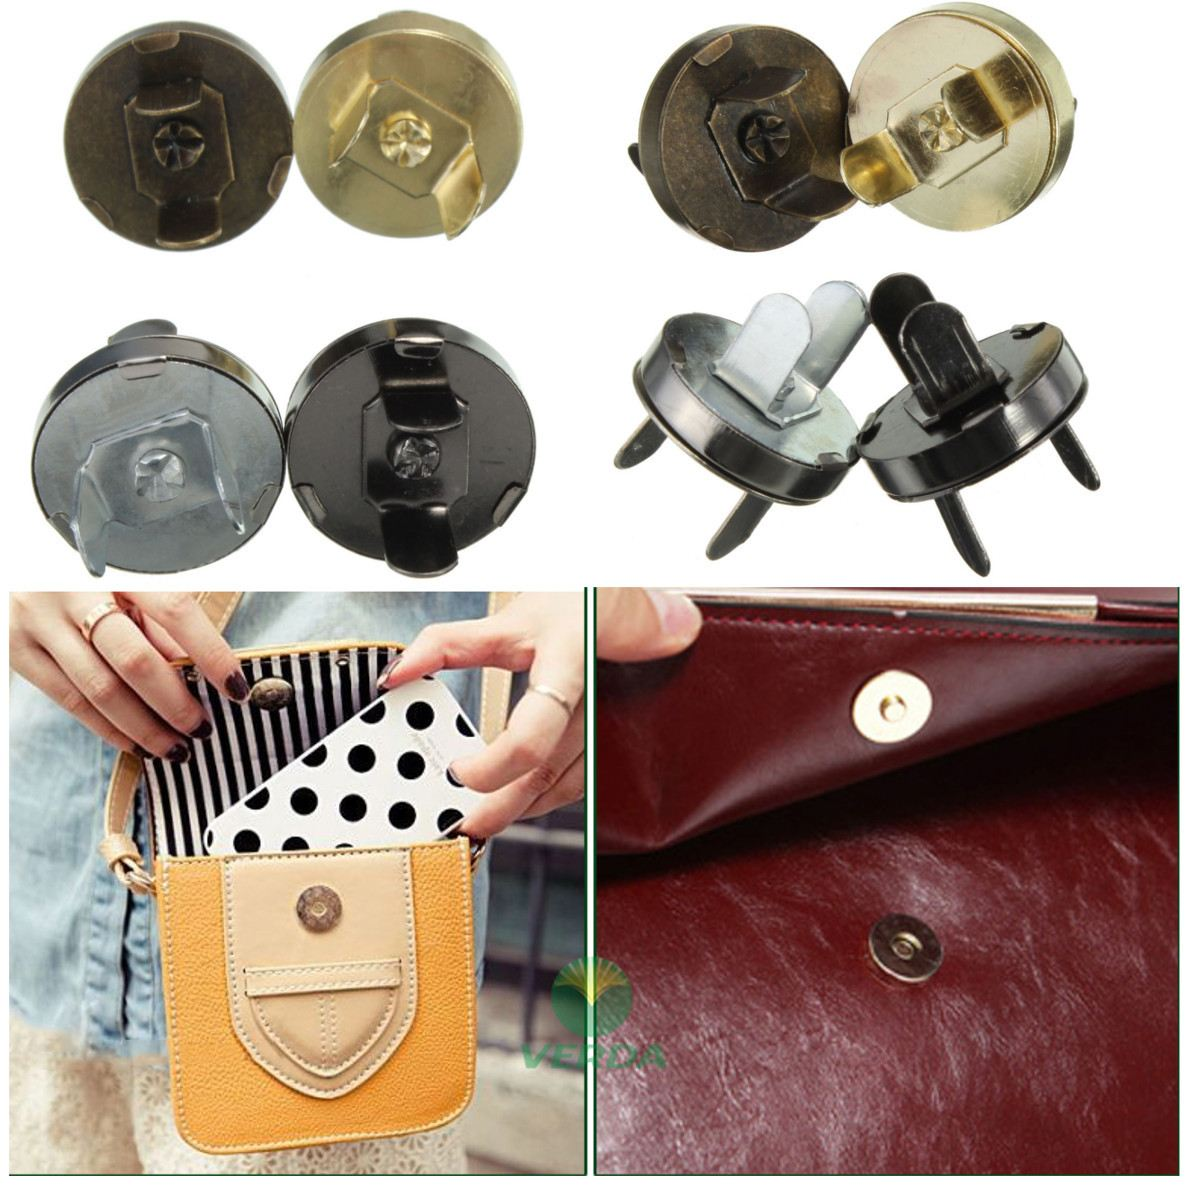 5pc/lot 18MM Magnetic Snap Fasteners Clasps Snap Buttons Purse Wallet Bags Parts Accessories Handbag DIY Replacement Accessories hабор д пива